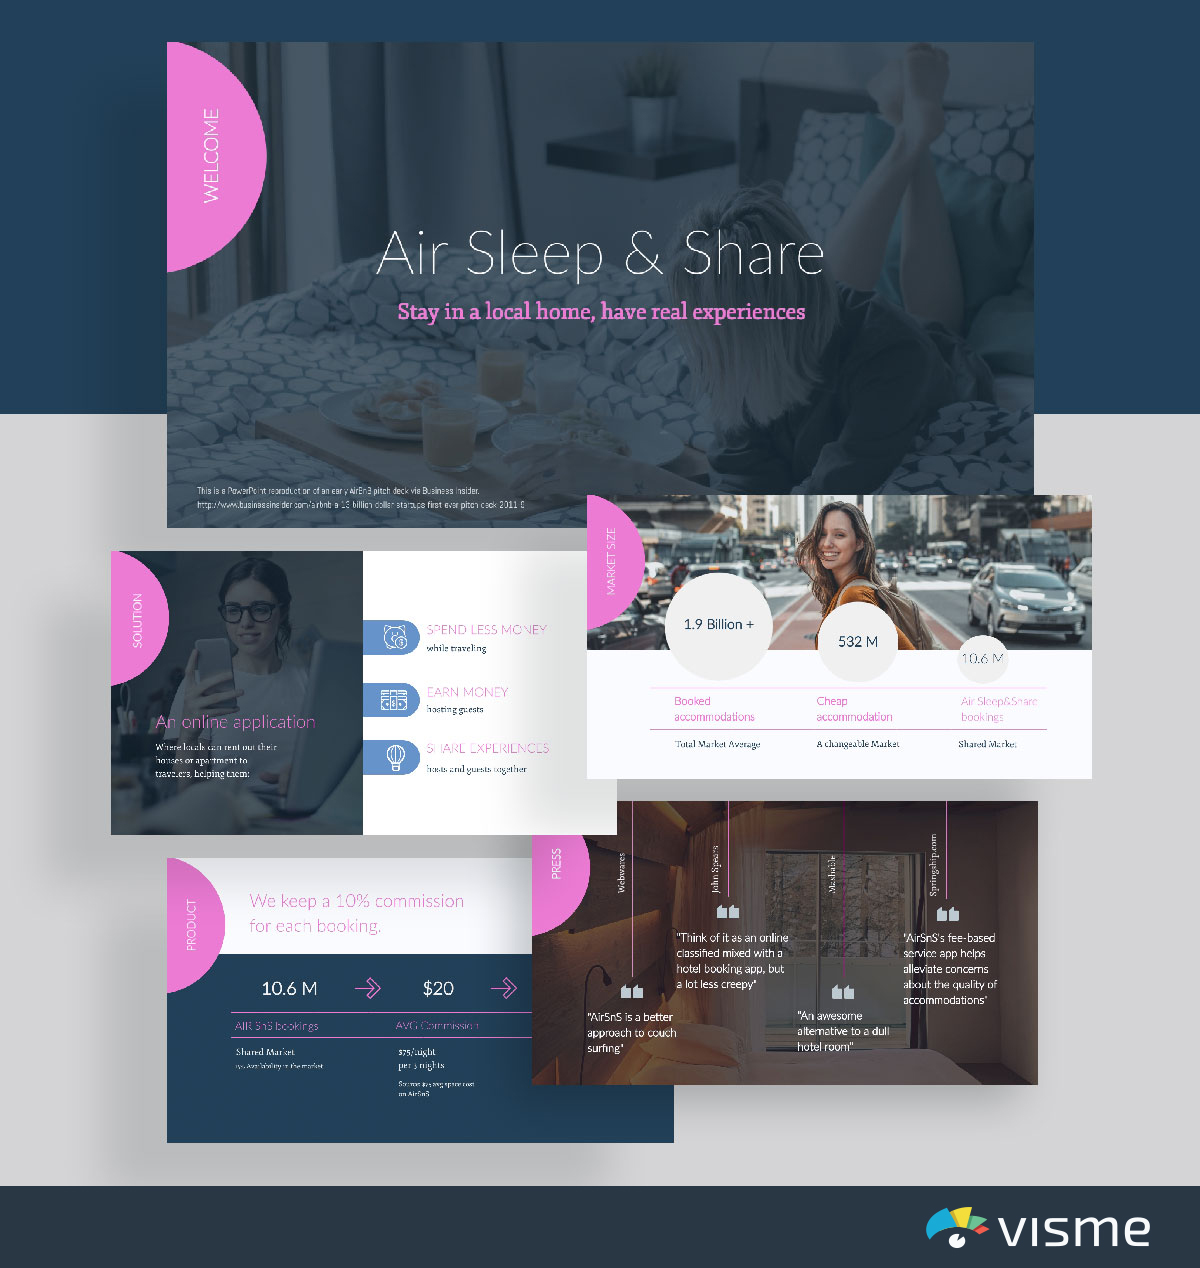 pitch deck design - airsns pitch deck template